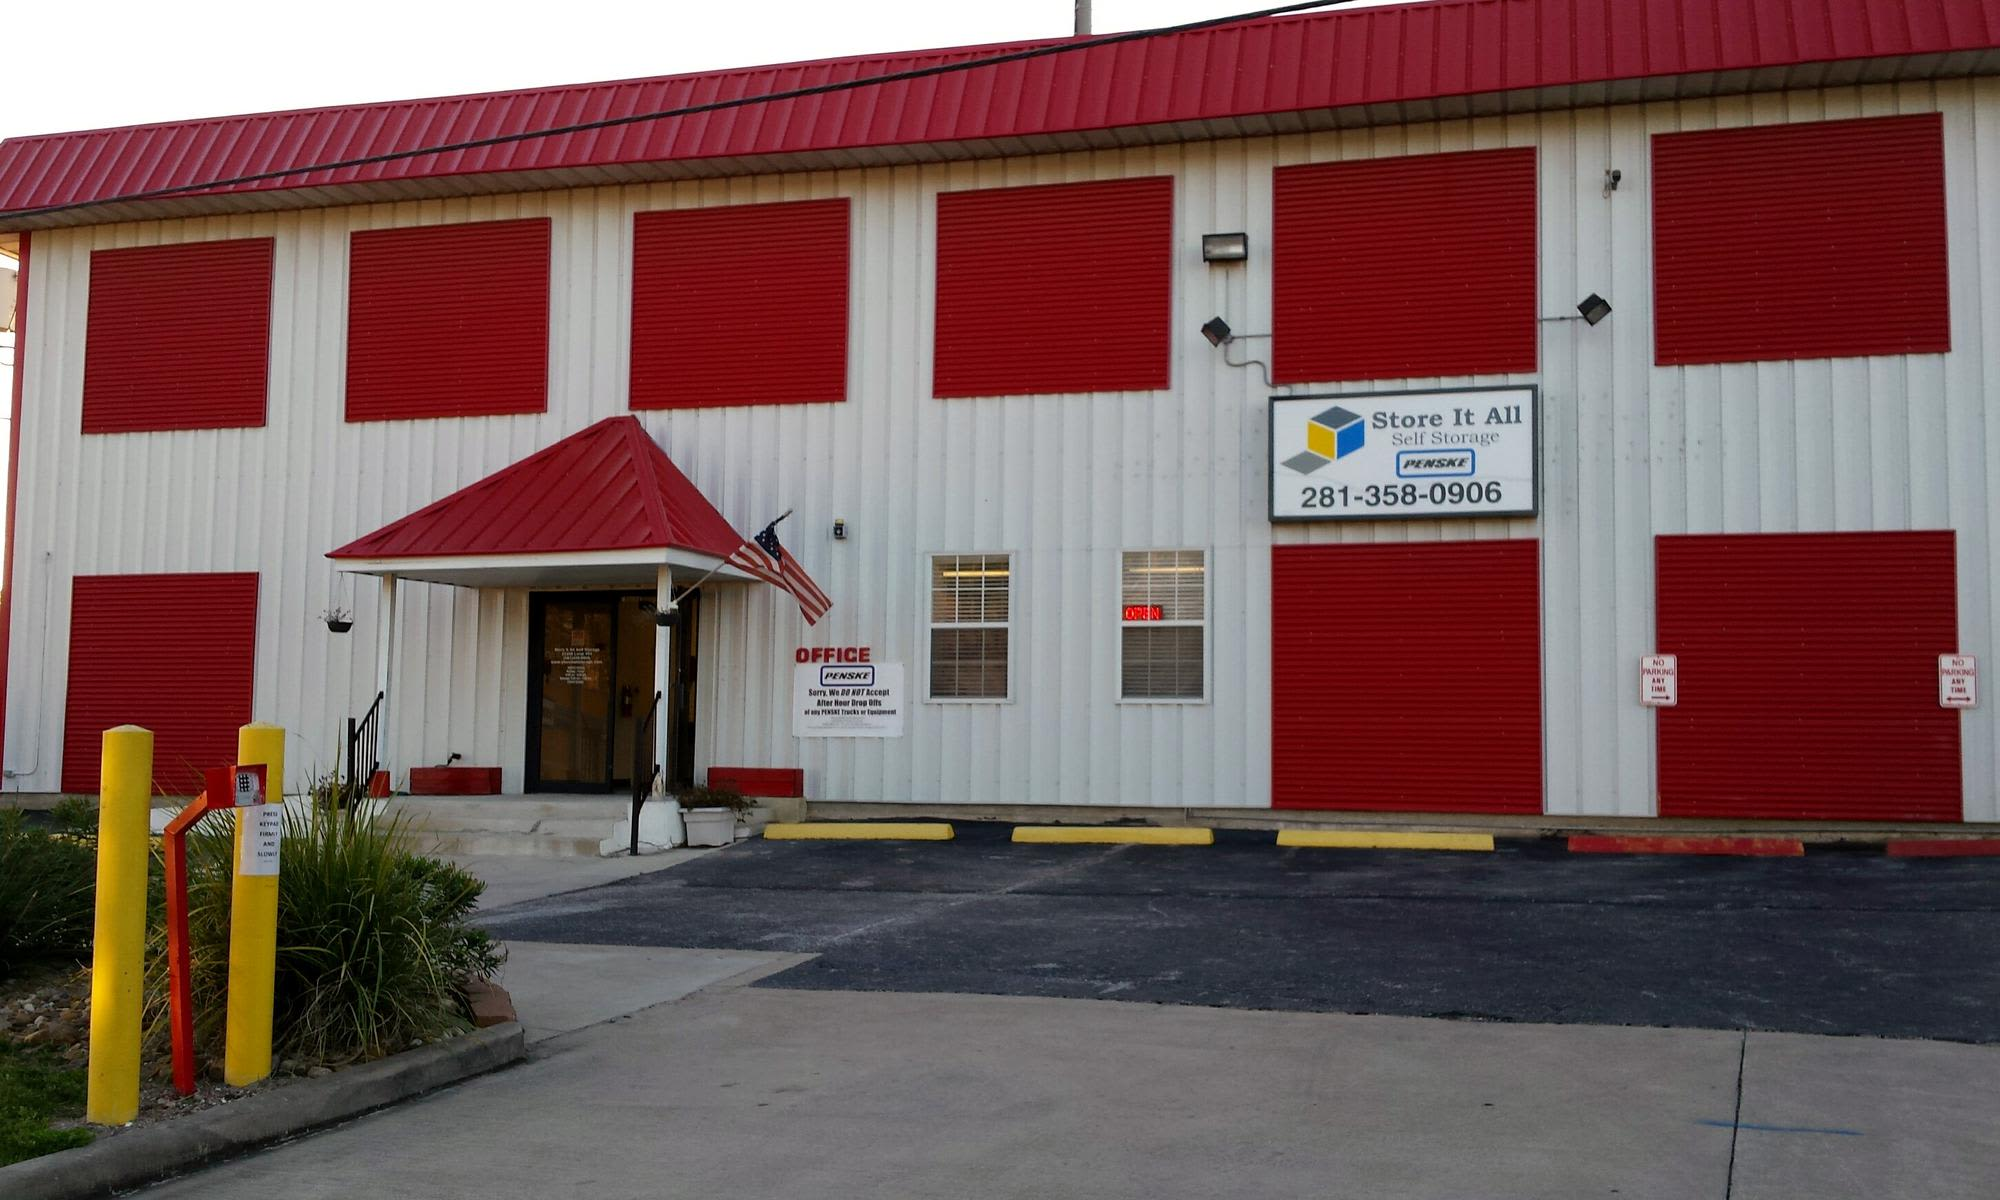 Self storage in Kingwood TX